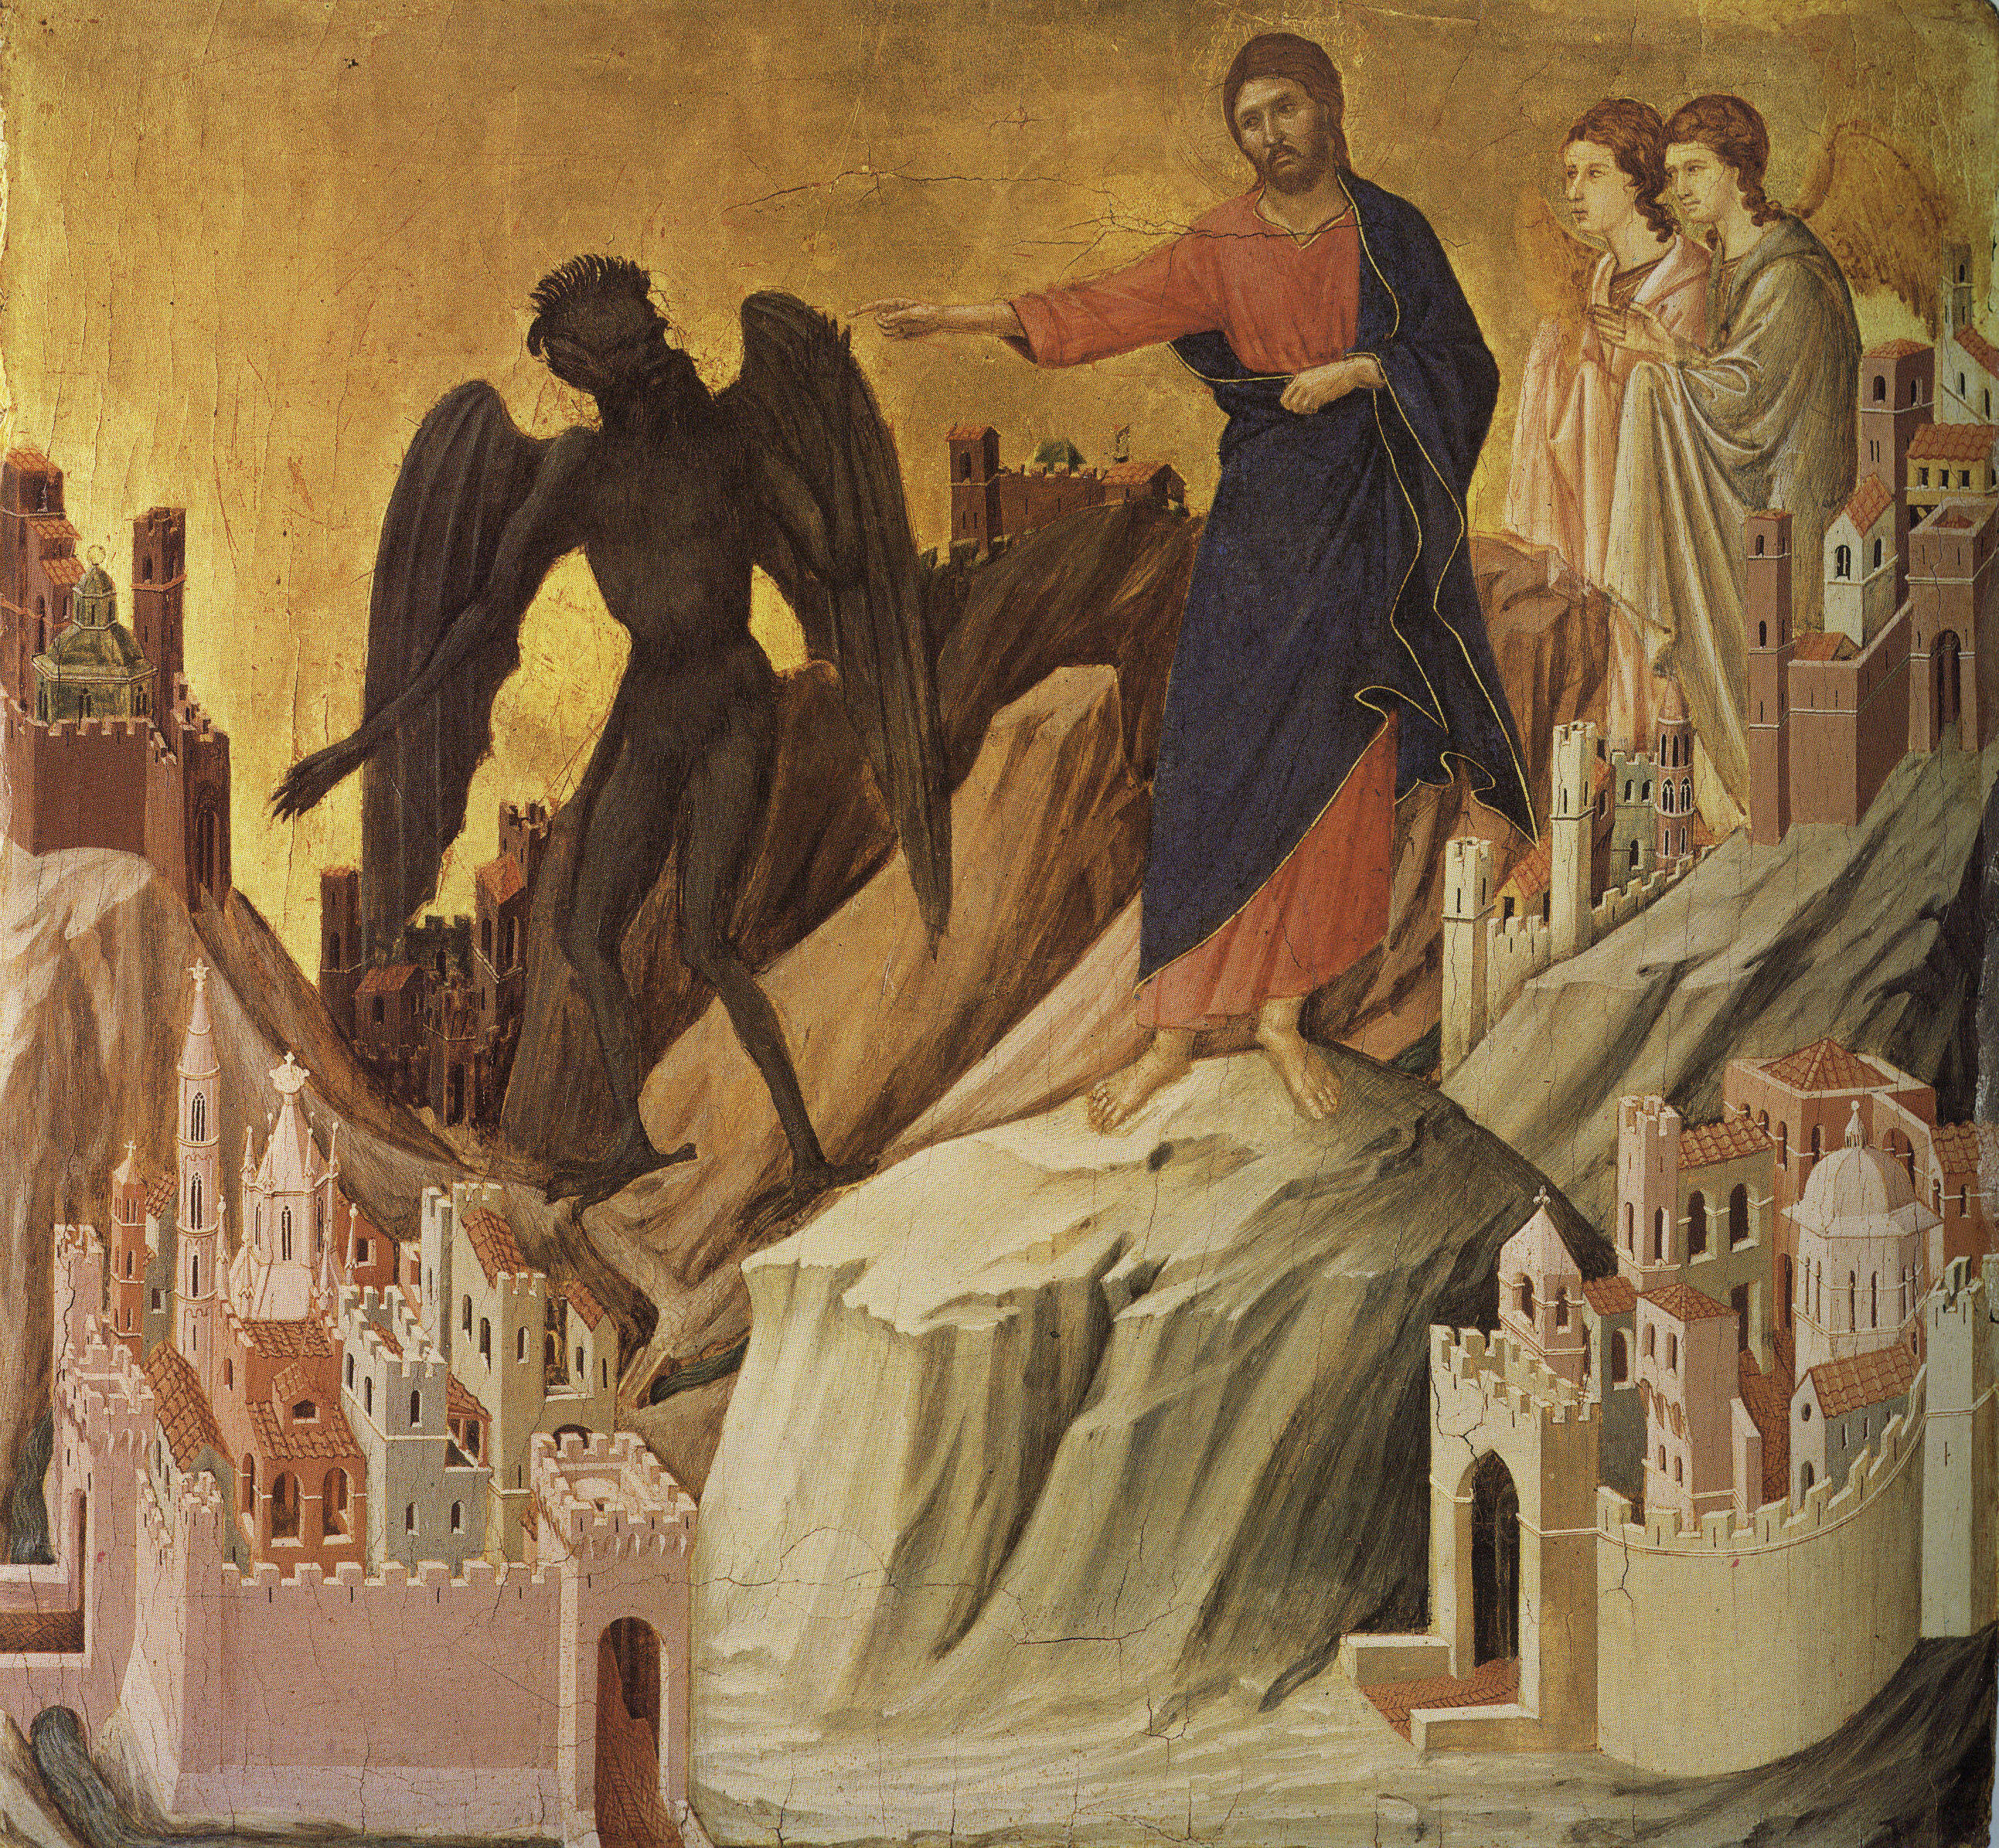 The Temptation of Christ on the Mountain by Duccio di Buoninsegna